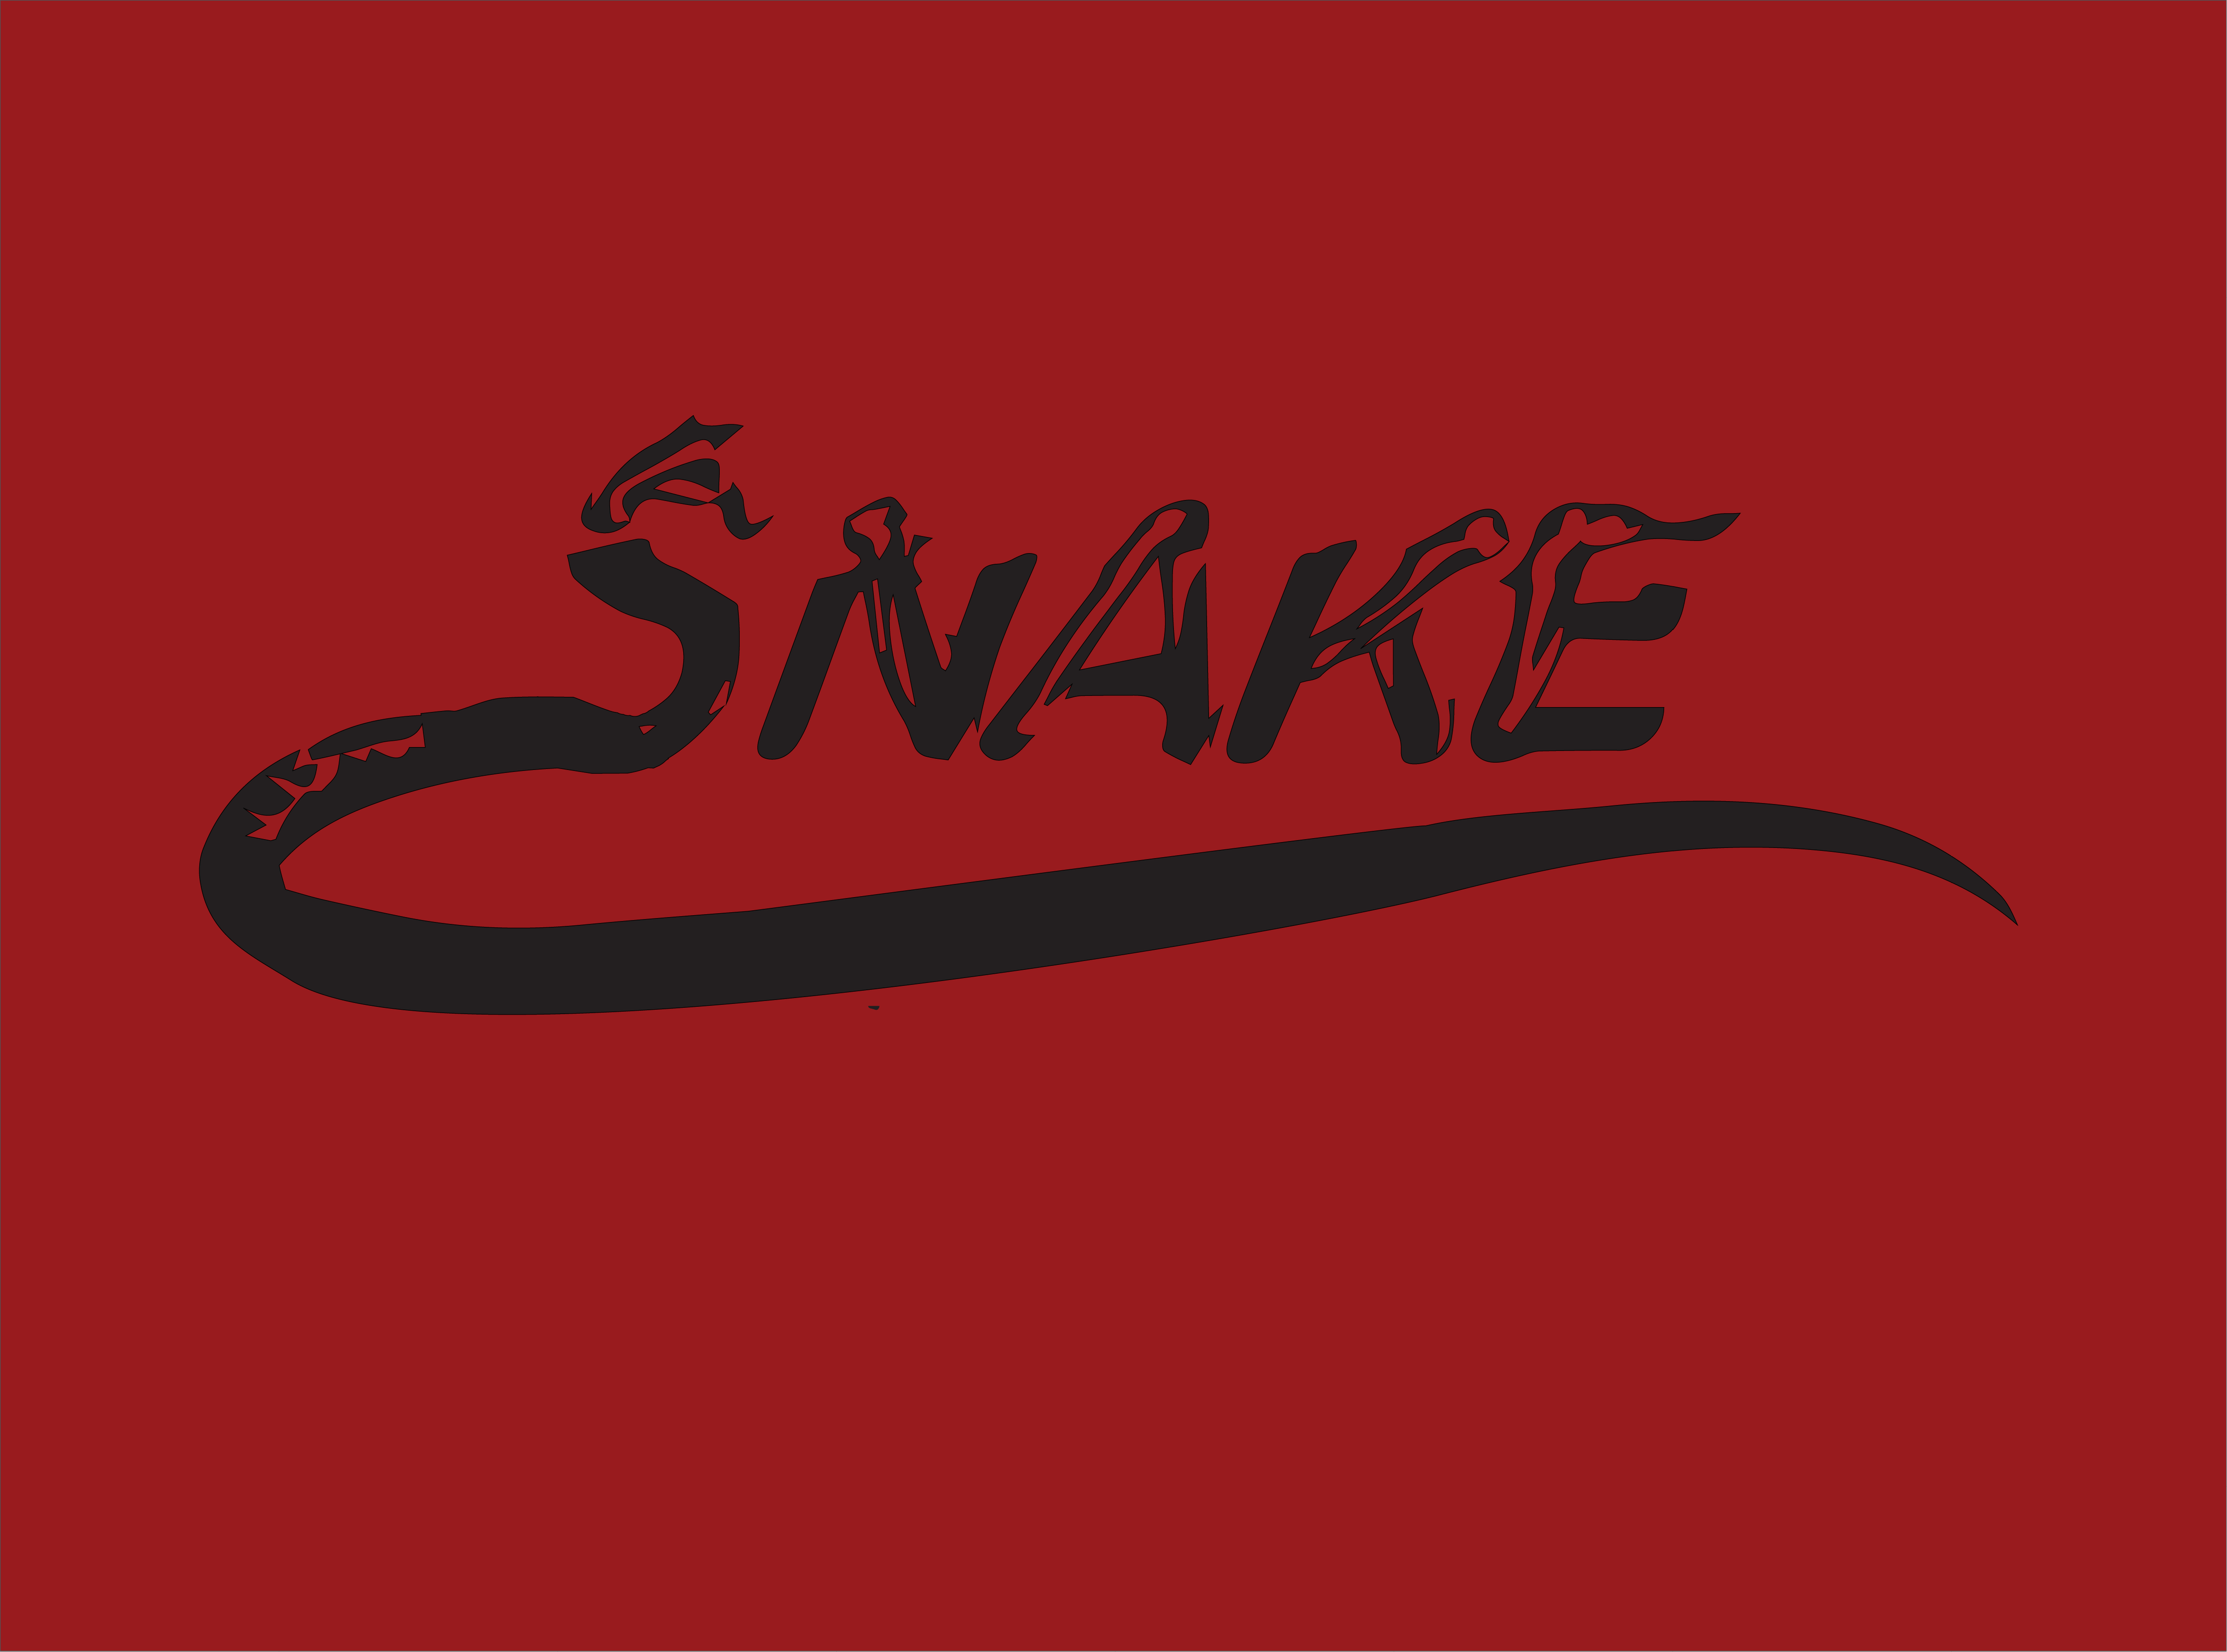 Download Free Snake Graphic By Mamplanglaut Creative Fabrica for Cricut Explore, Silhouette and other cutting machines.